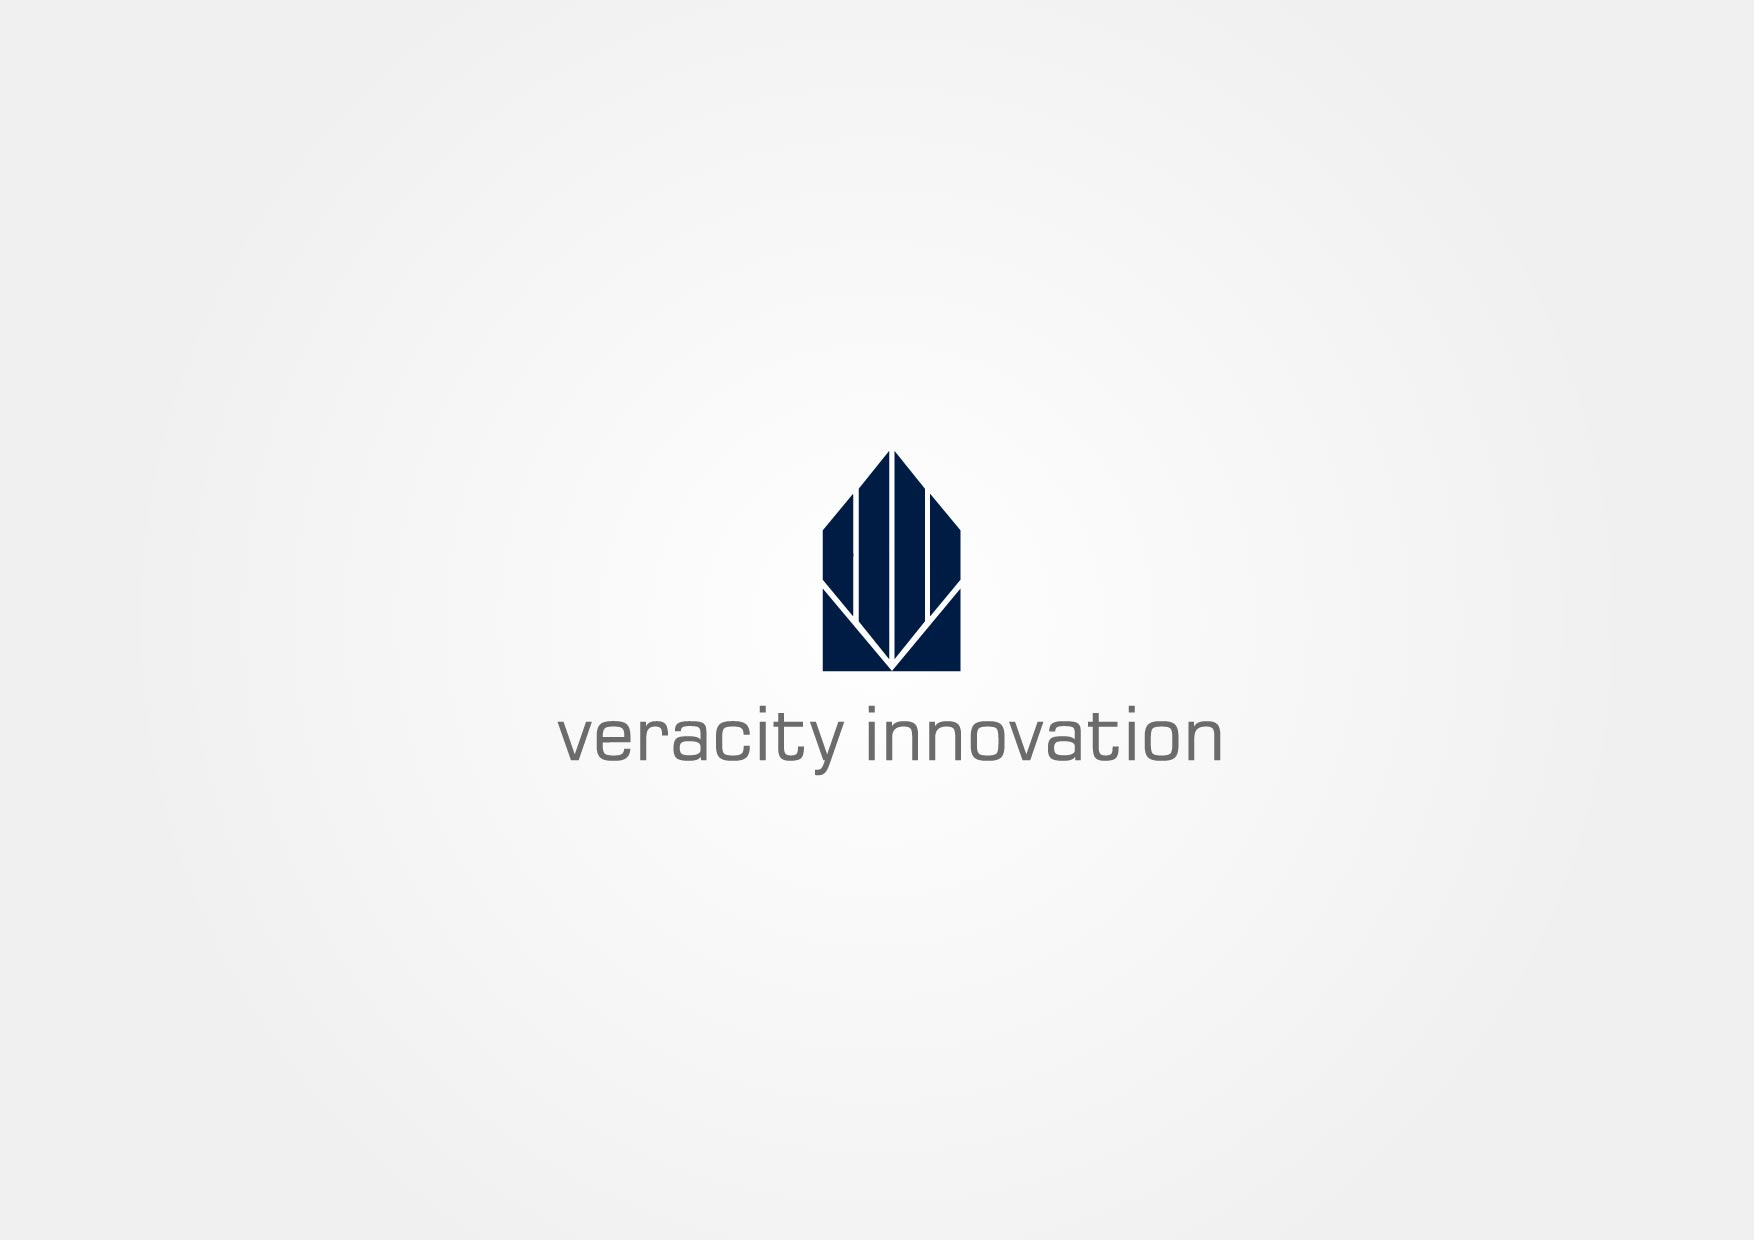 Logo Design by Osi Indra - Entry No. 257 in the Logo Design Contest Creative Logo Design for Veracity Innovation, LLC.